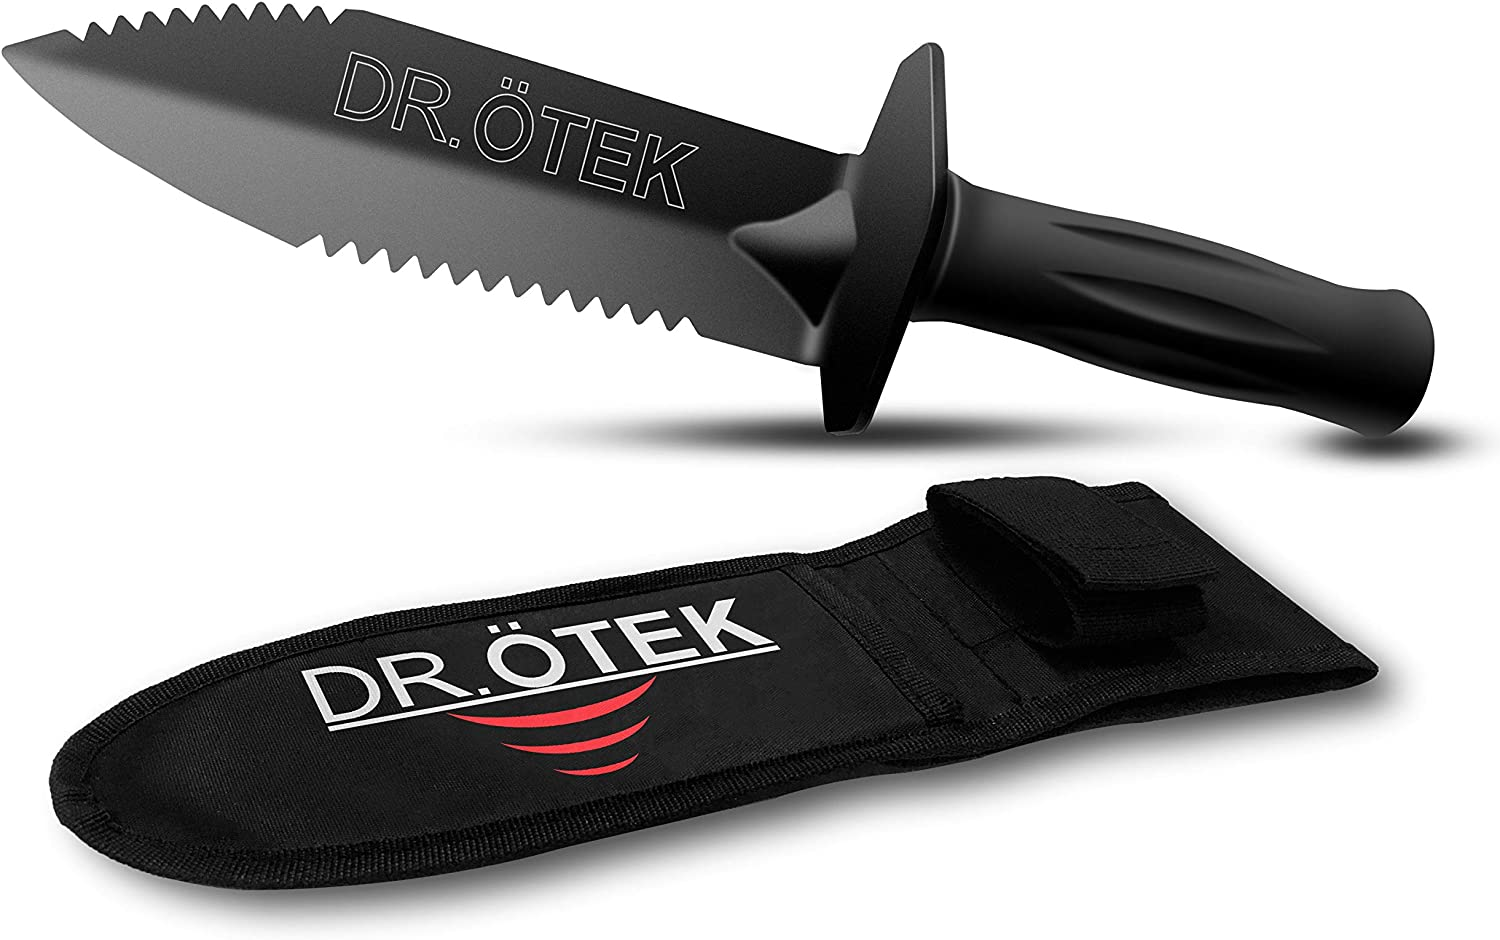 DR.ÖTEK Metal Detector Digger Tool, Sturdy Heavy Duty Double Serrated Edge Digger, Gardening Accessories with Sheath Belt Mount